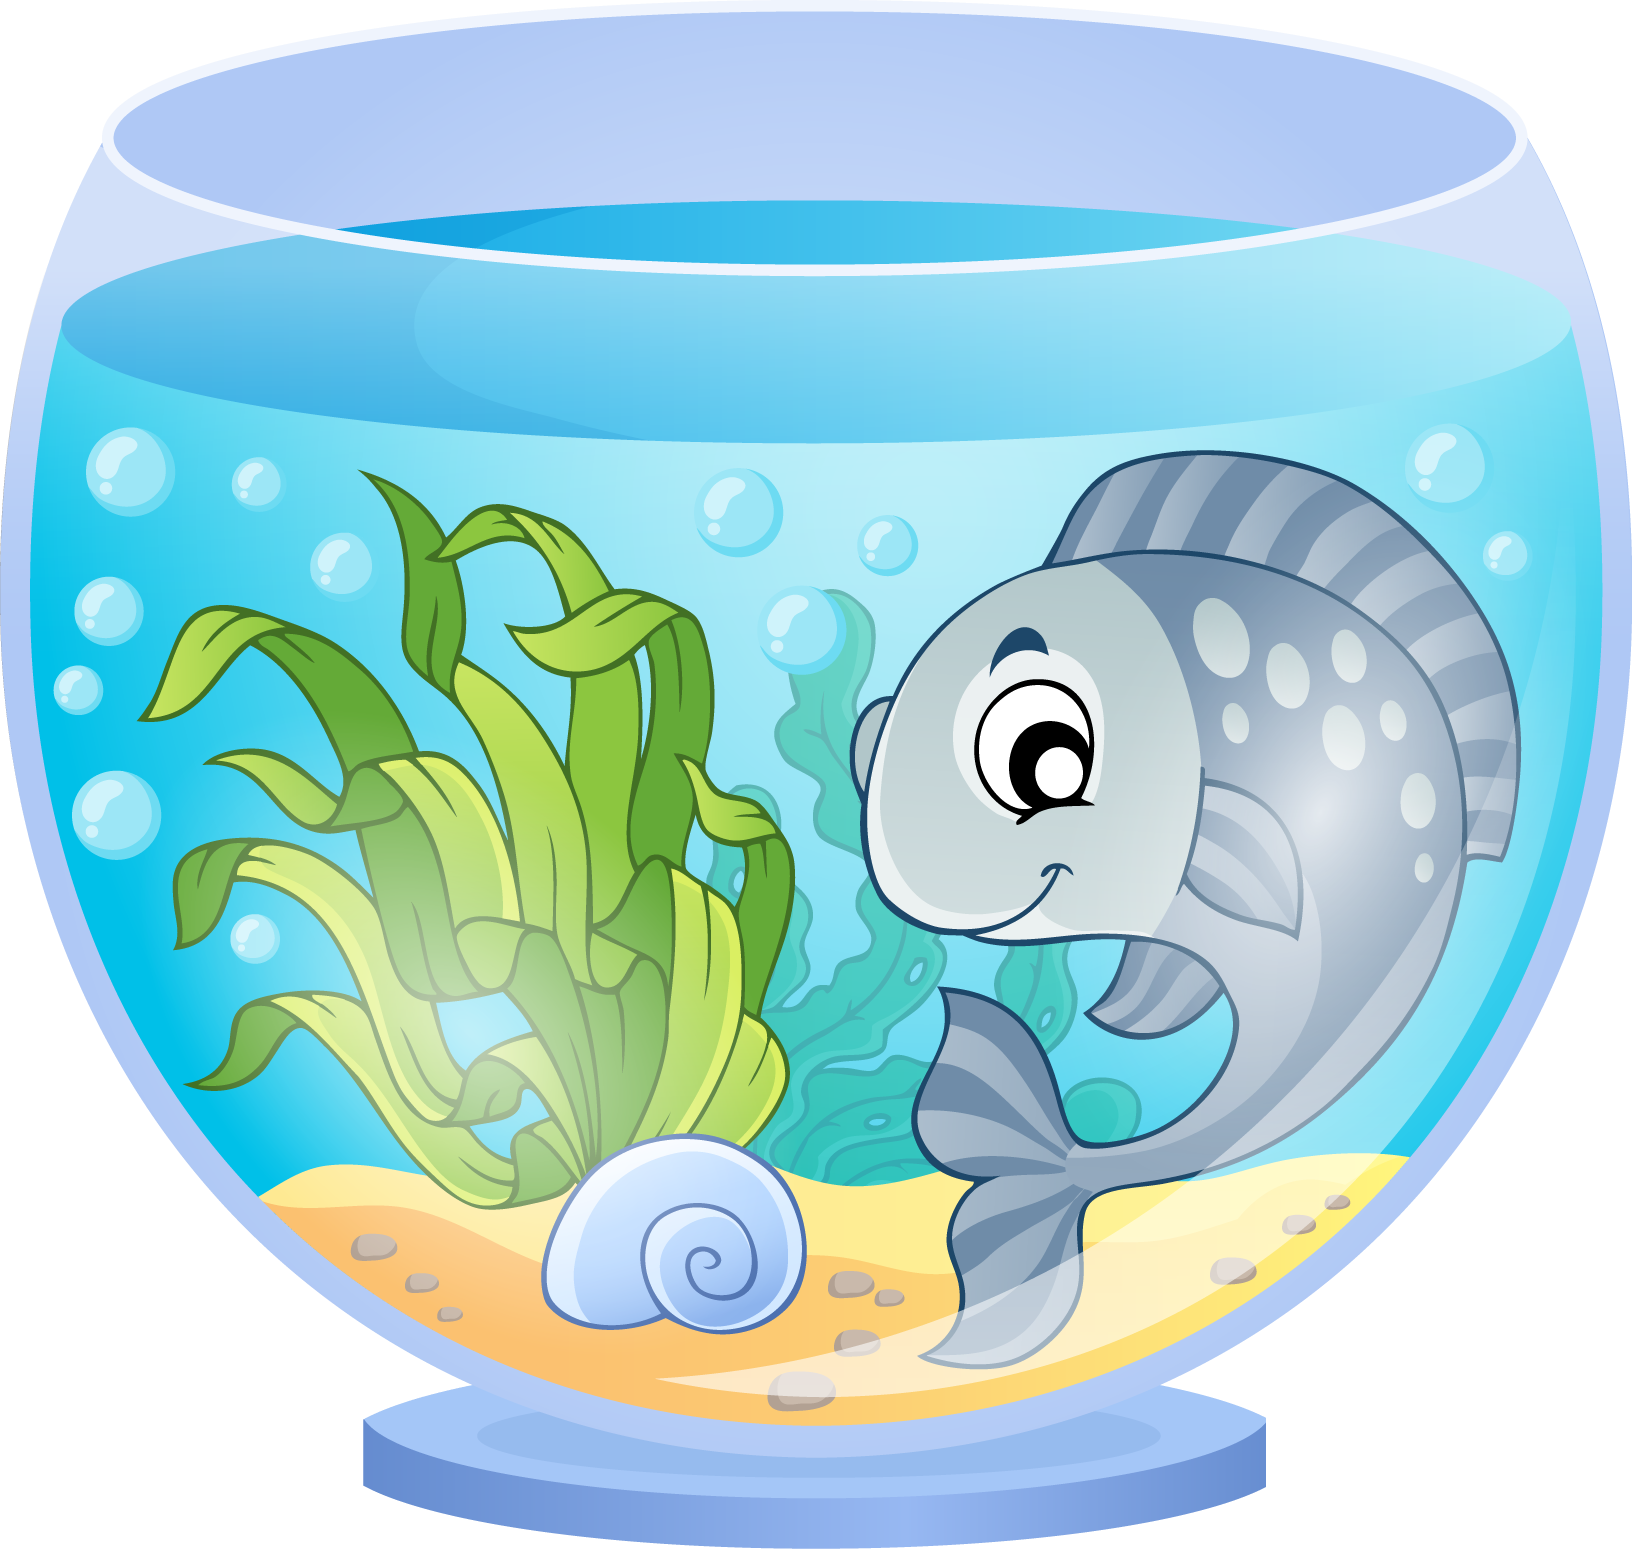 Fish tank transparent clipart vector freeuse Aquarium Cartoon Goldfish - Blue fish and fish tank 1632*1549 ... vector freeuse